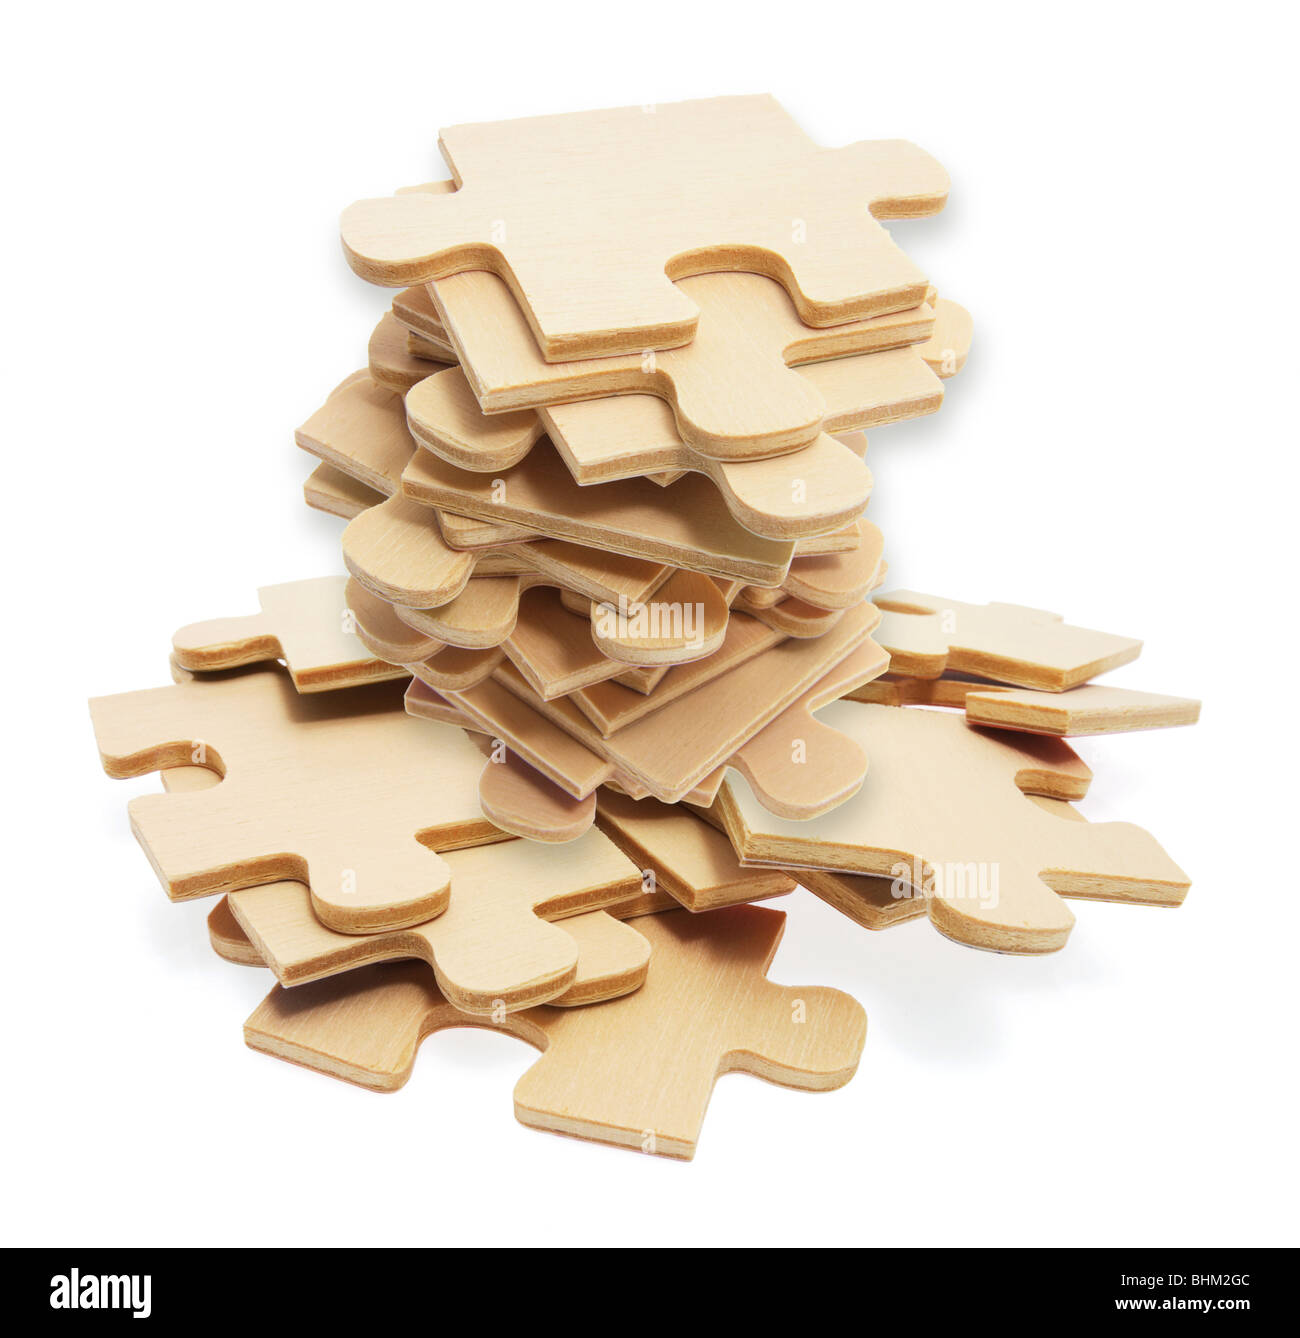 Pile of Jigsaw Puzzle Pieces - Stock Image